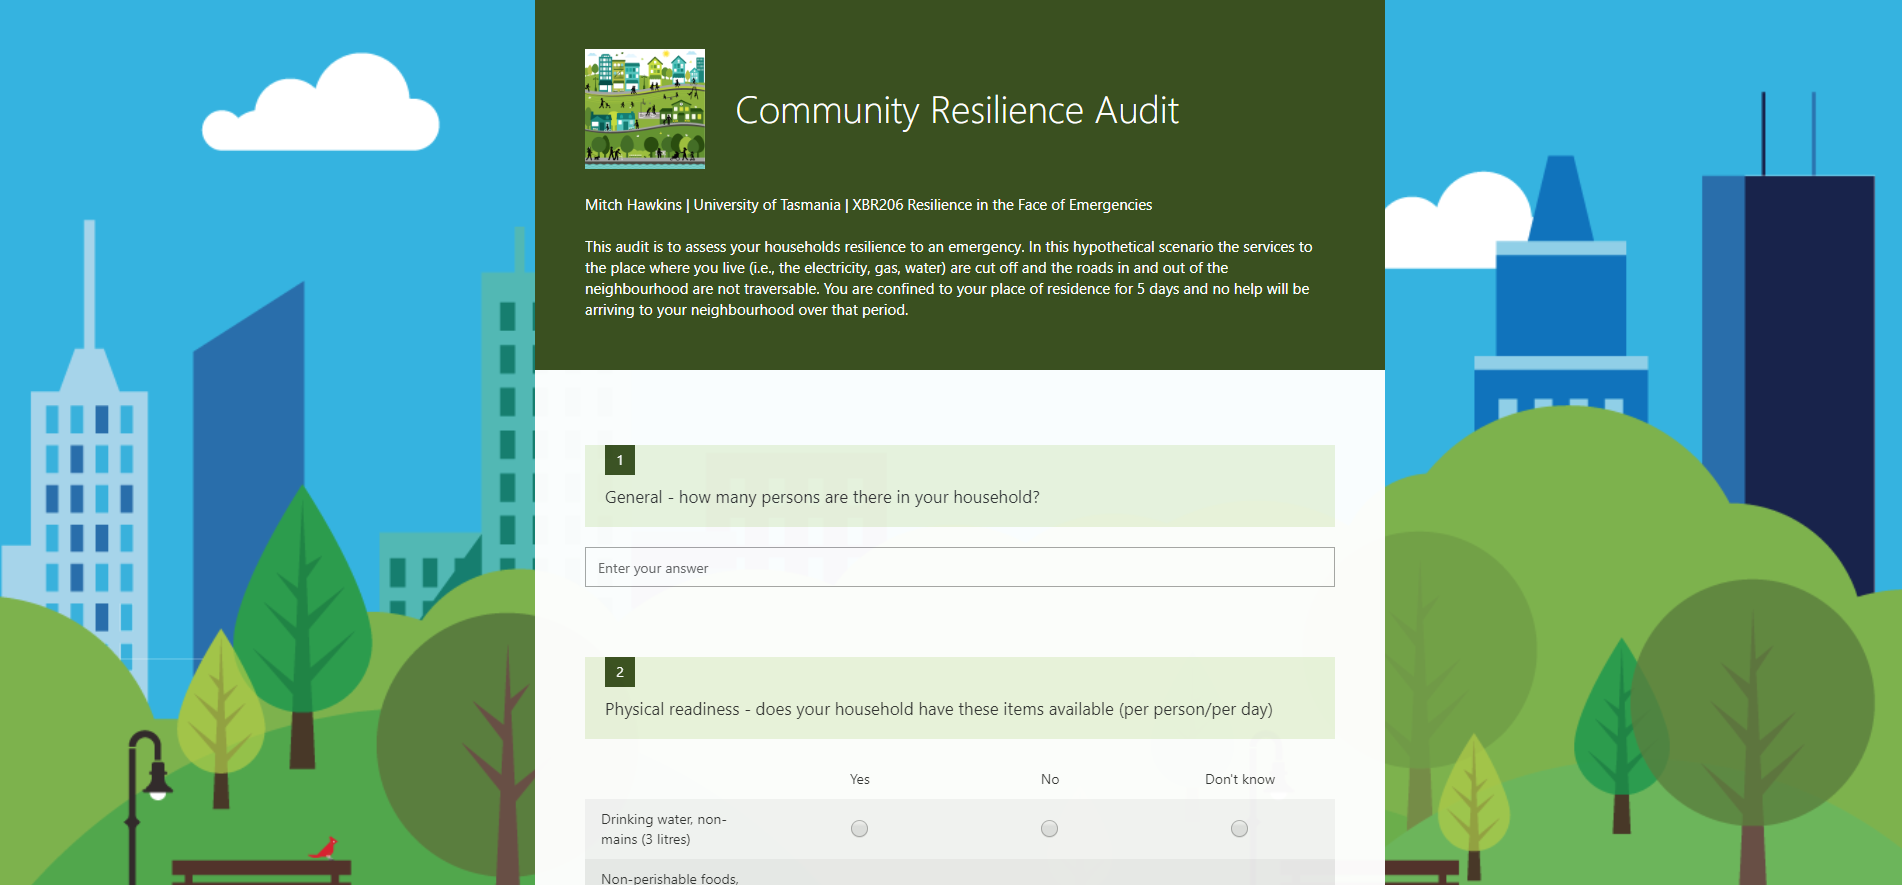 using microsoft forms for surveys